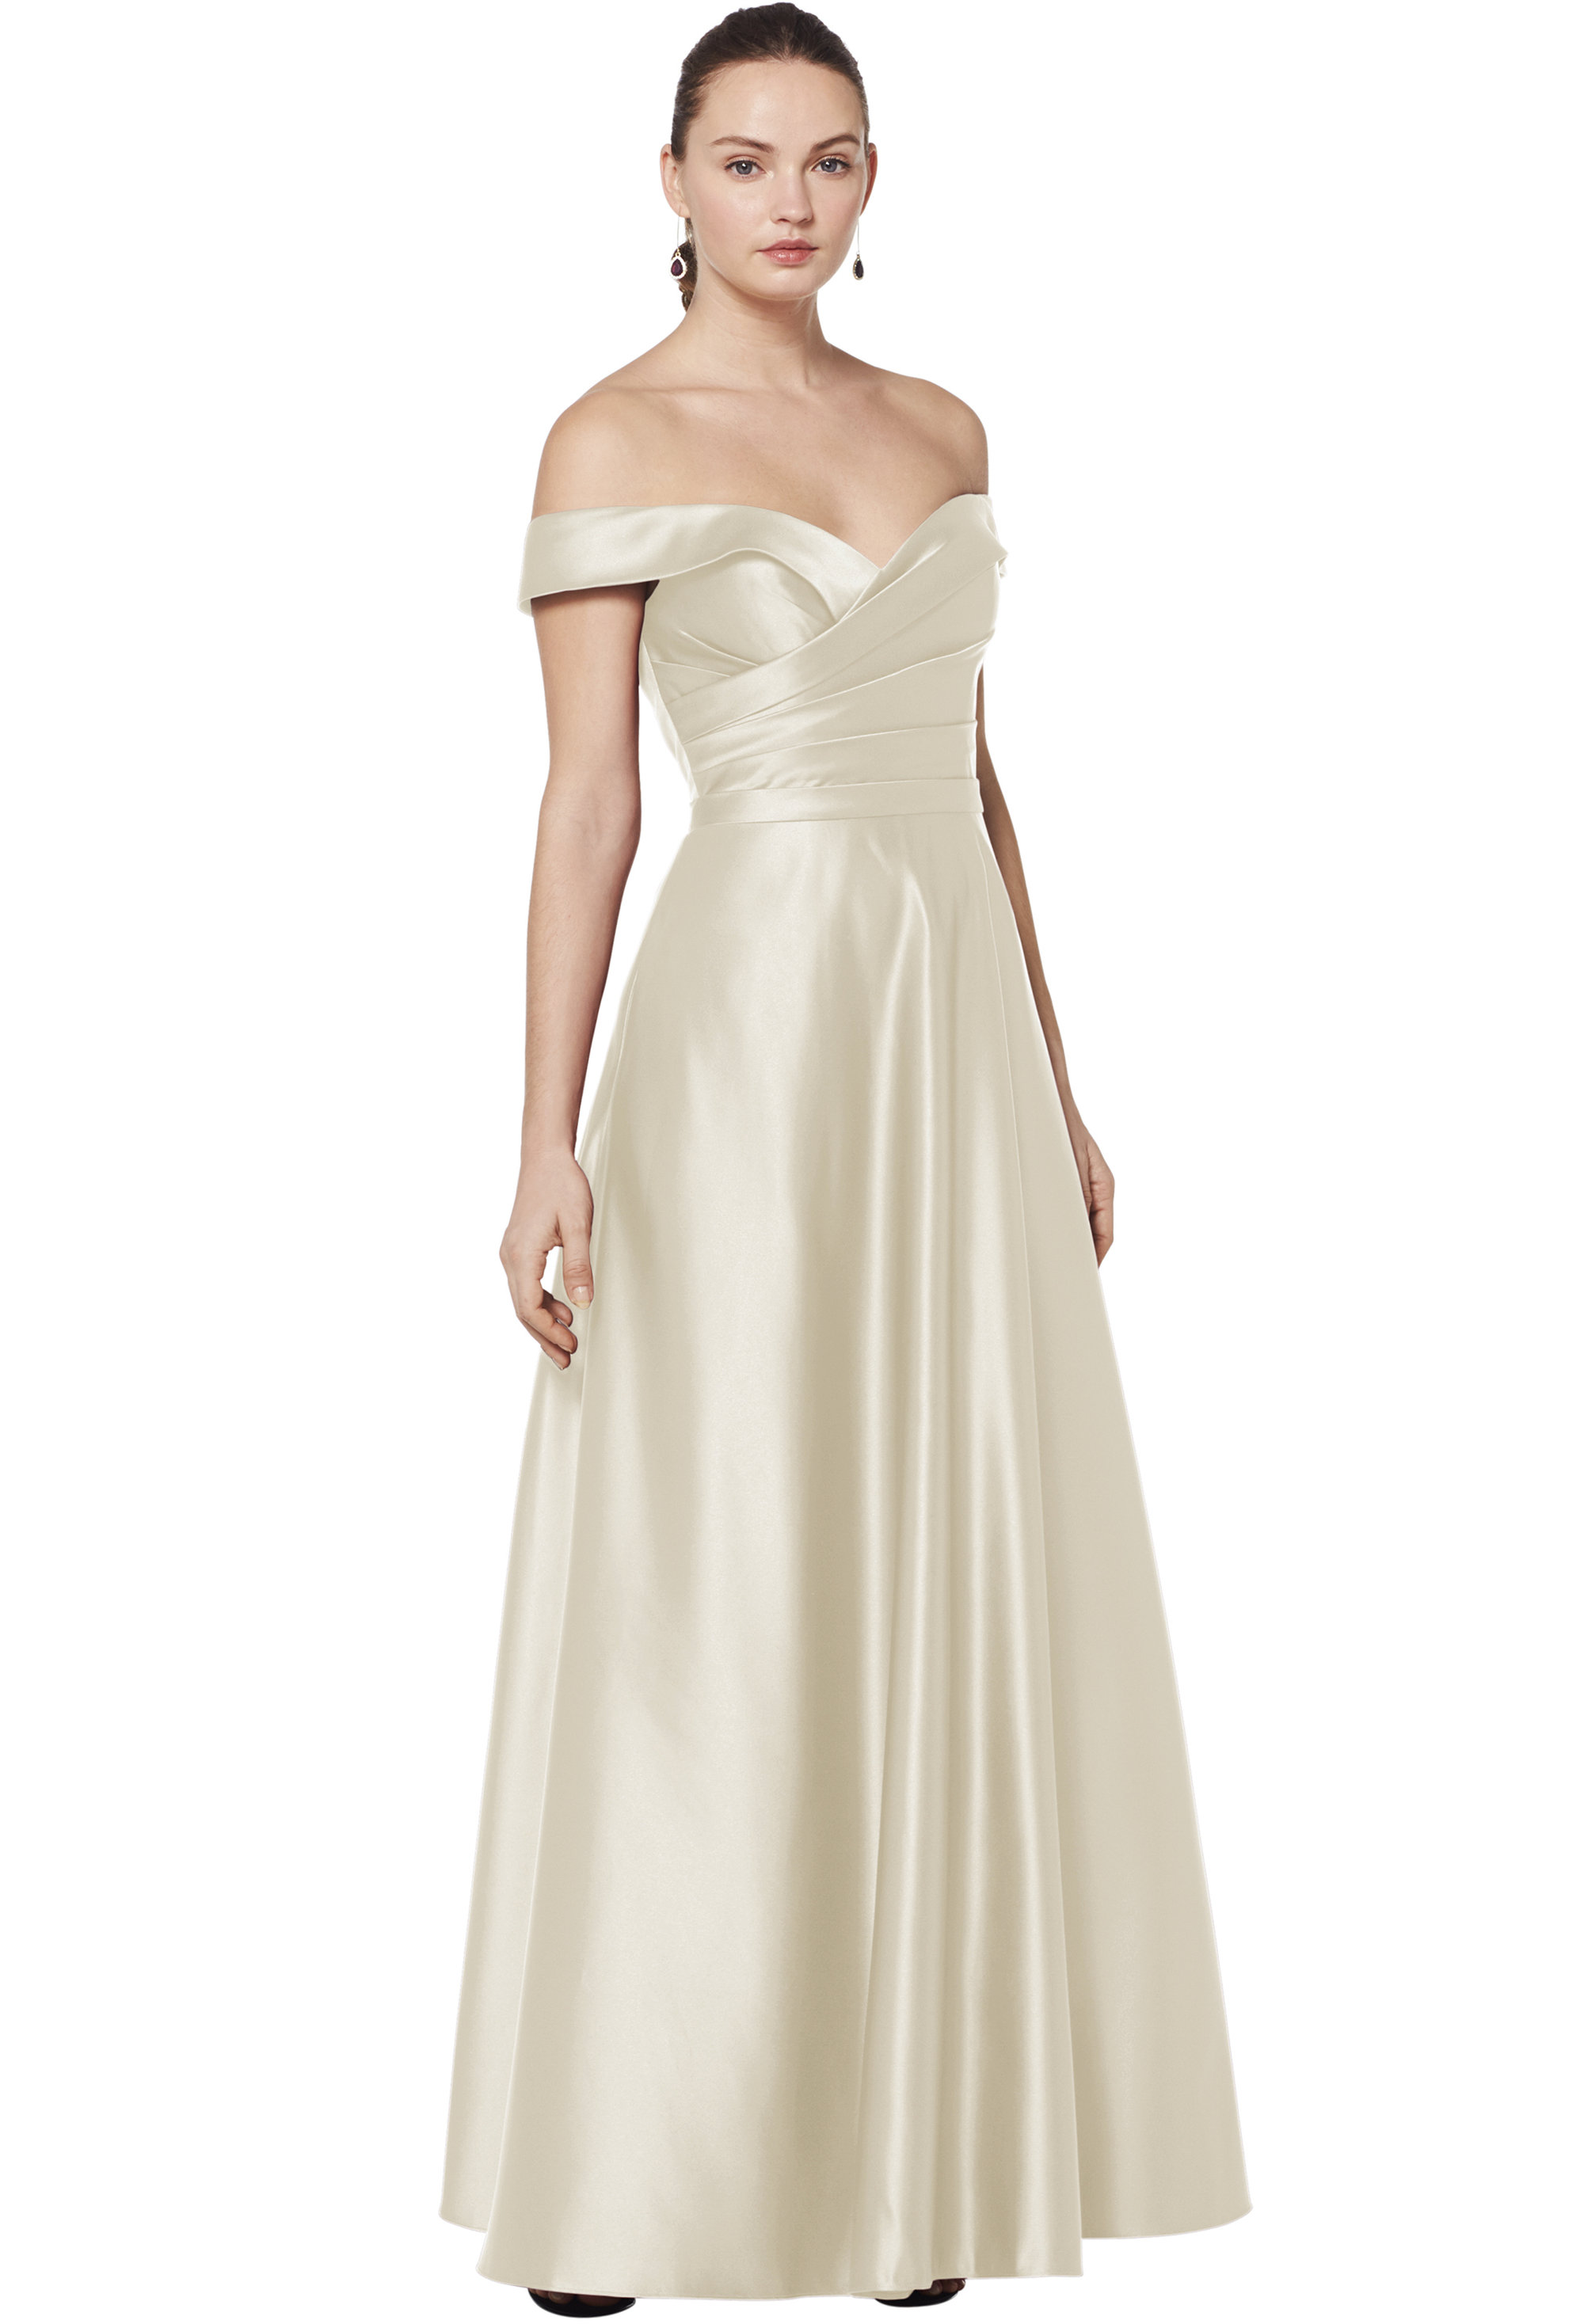 Bill Levkoff EURO CHAMPAGNE European Satin Sweetheart A-line gown, $210.00 Front